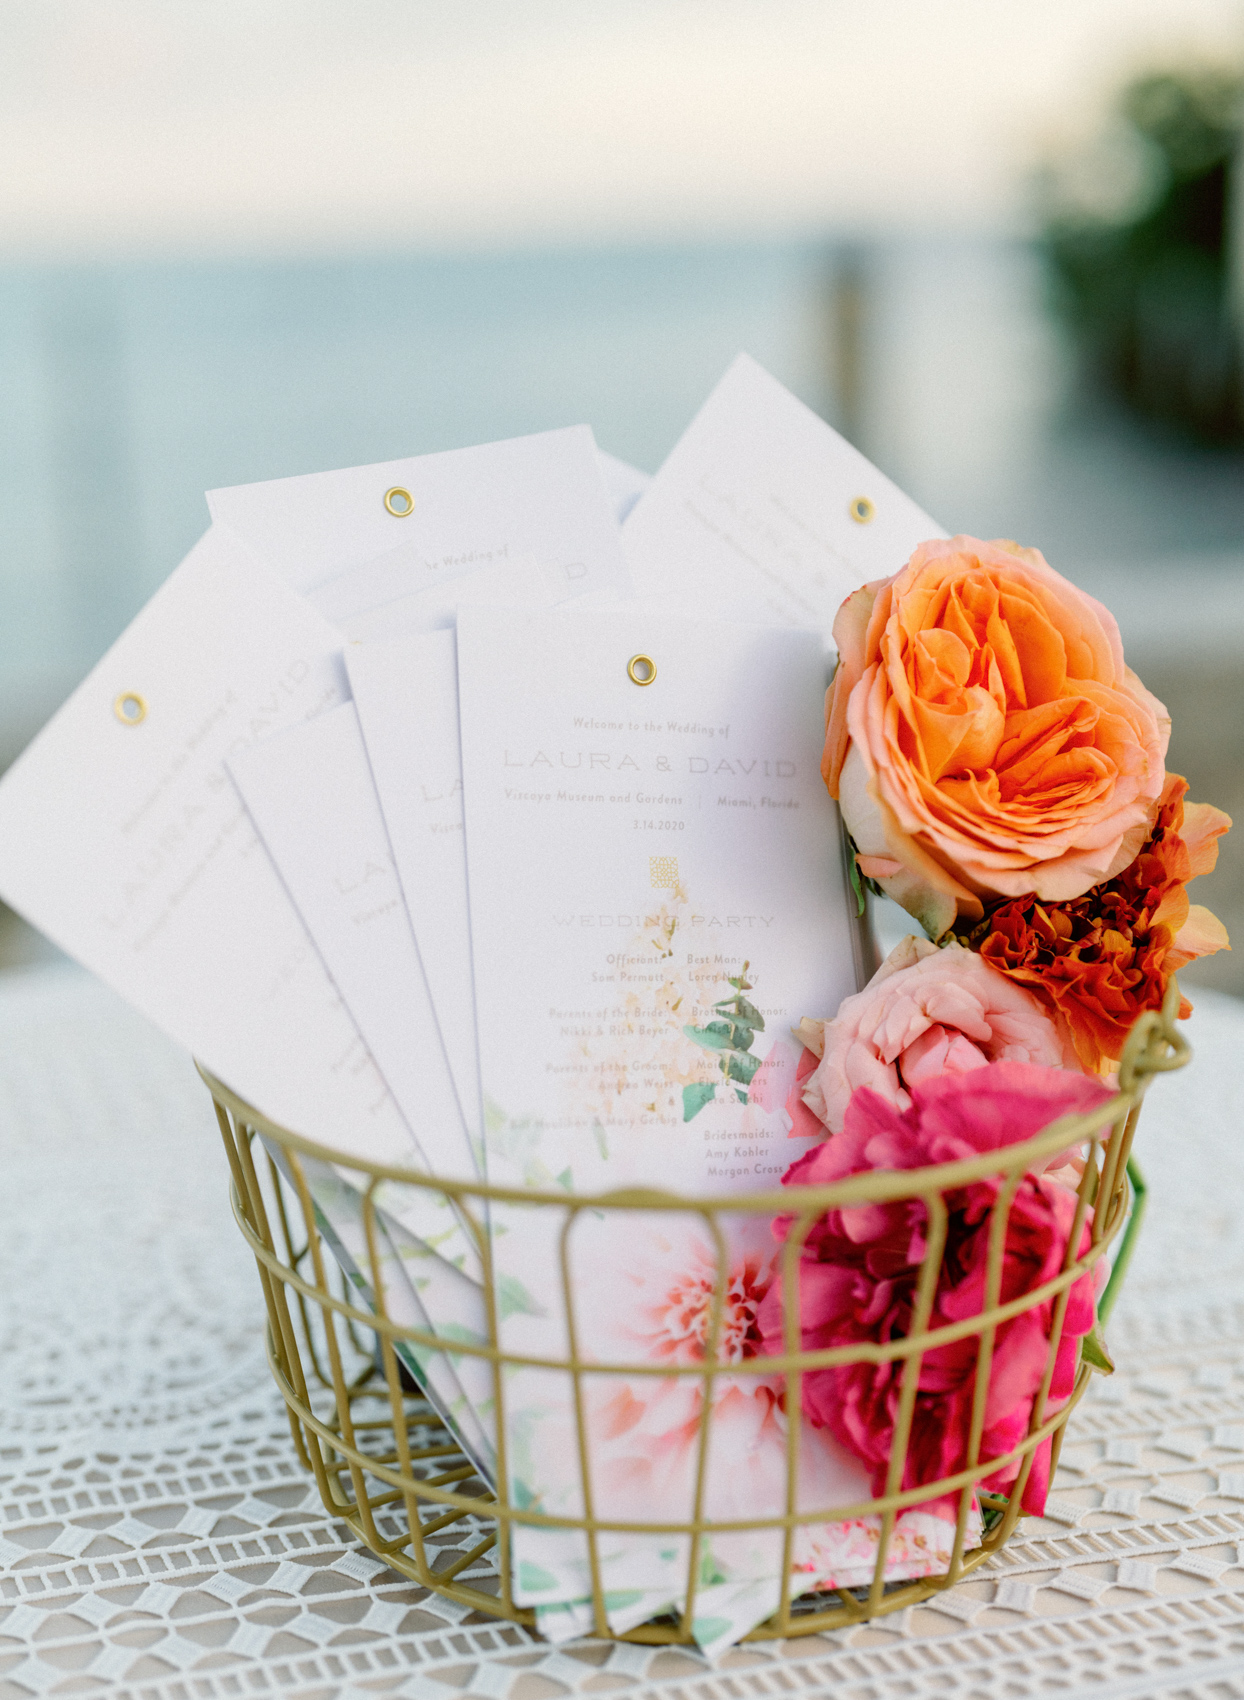 elegant white ceremony programs in gold basket with flowers